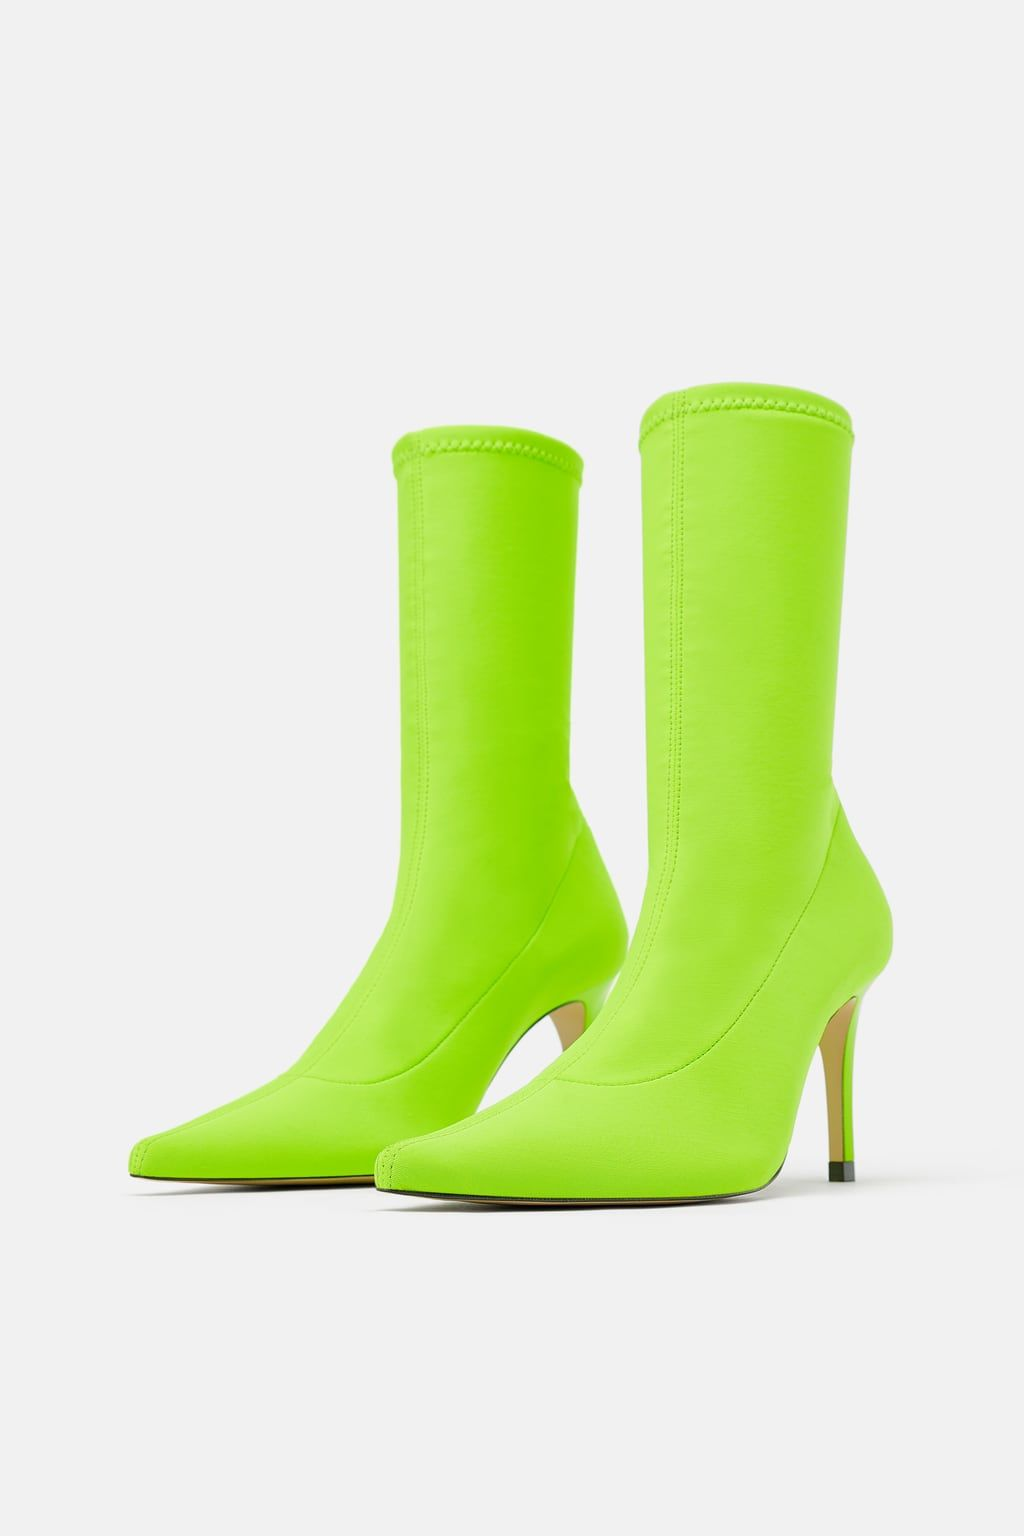 209247a8f6 Neon sock-style heeled ankle boots in 2019 | January 19 Wishlist ...